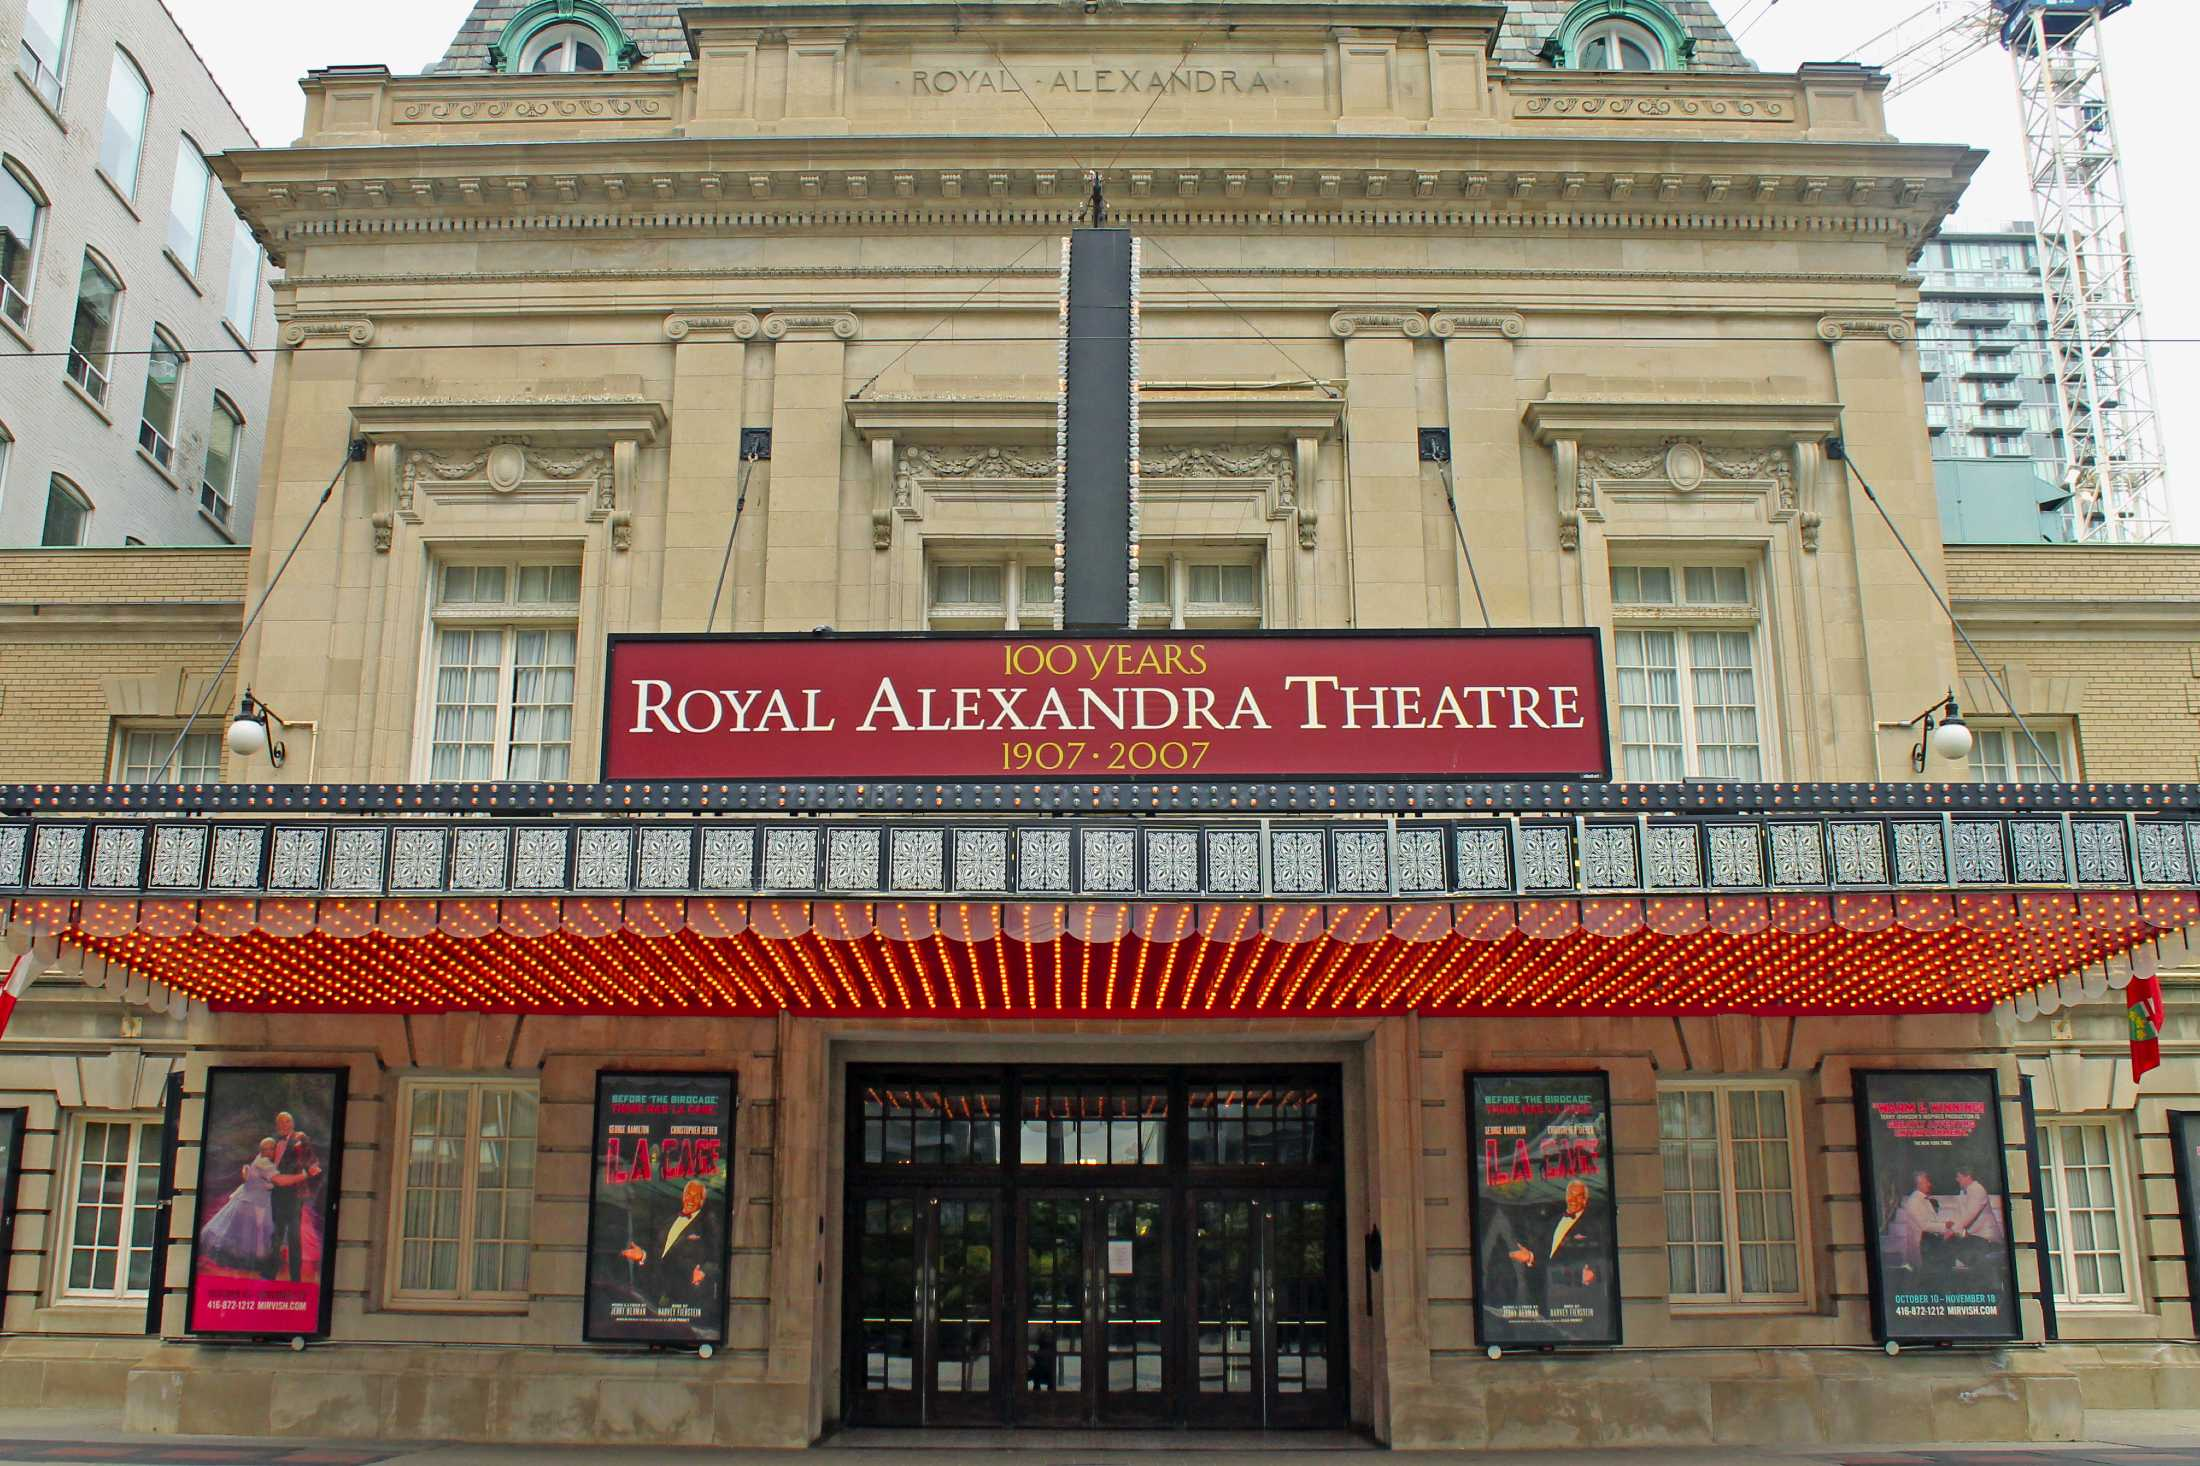 Royal Alexandra Theatre - Focal Journey